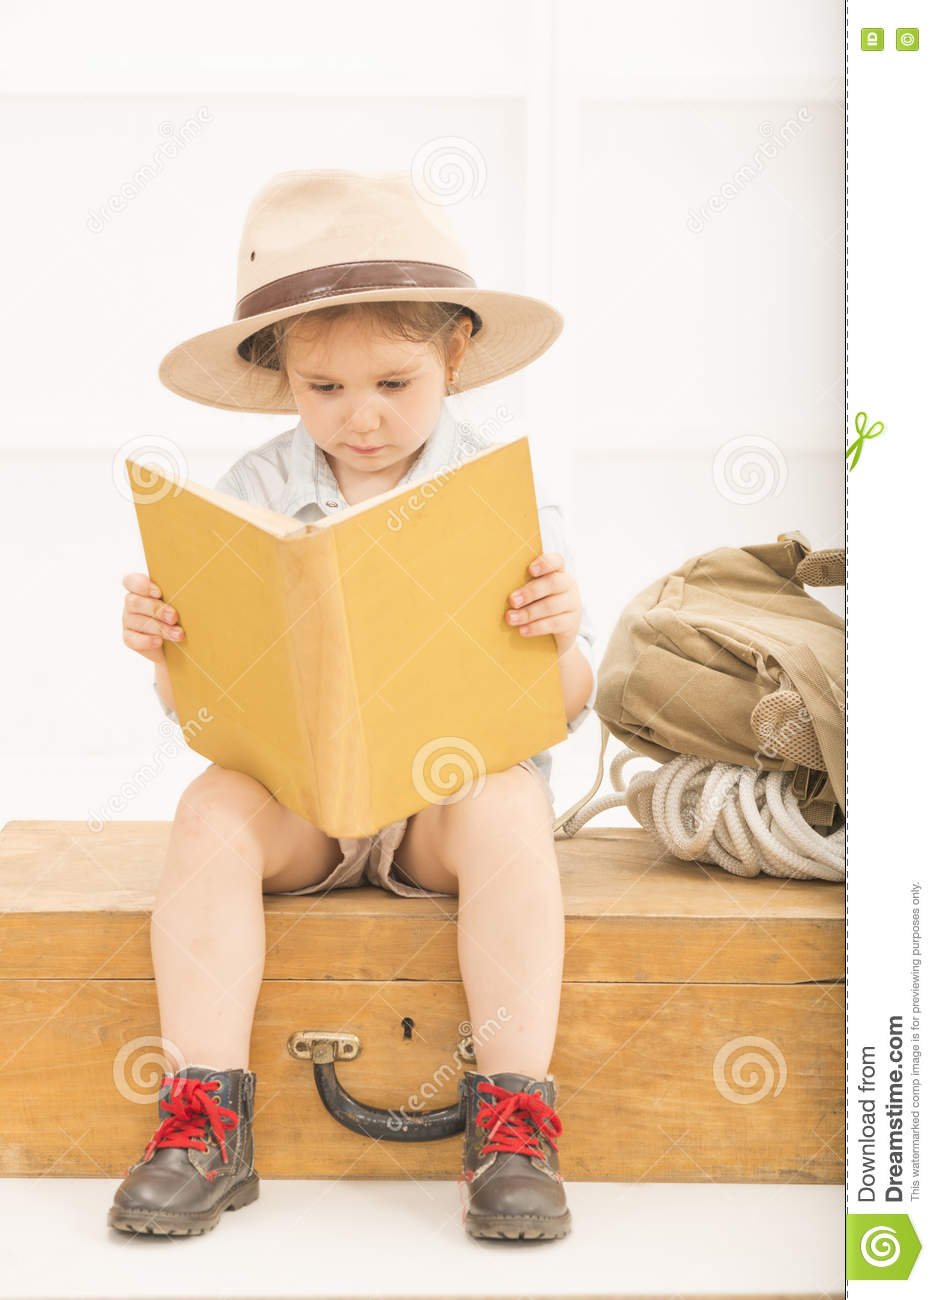 da05f7839cc0d An adorable little girl in a safari hat and explorer clothes reading old  book sitting on a wooden suitcase with backpack and safety rope